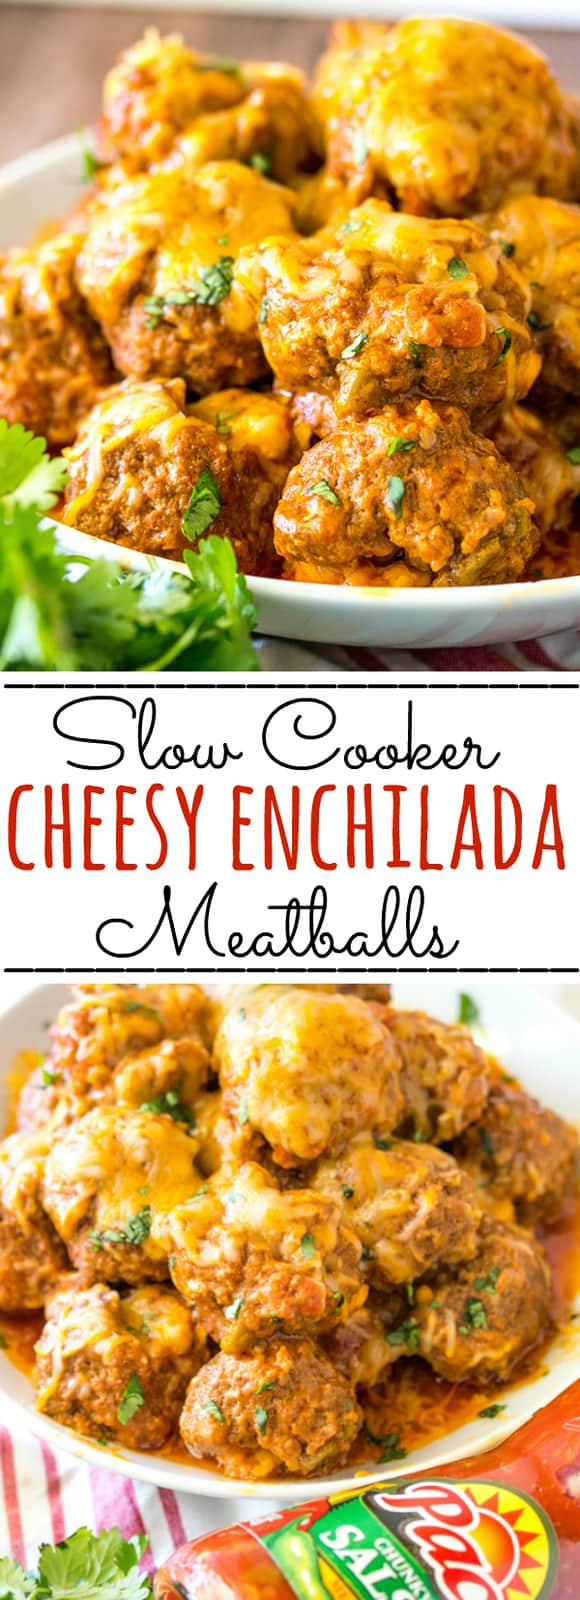 Cheesy, spicy and addicting these Cheesy Enchilada Crockpot Meatballs are a flavorful, gooey and delicious appetizer recipe that is perfect for parties. #meatballs #slowcooker #crockpot #beef #cheesy #appetizers #Mexican